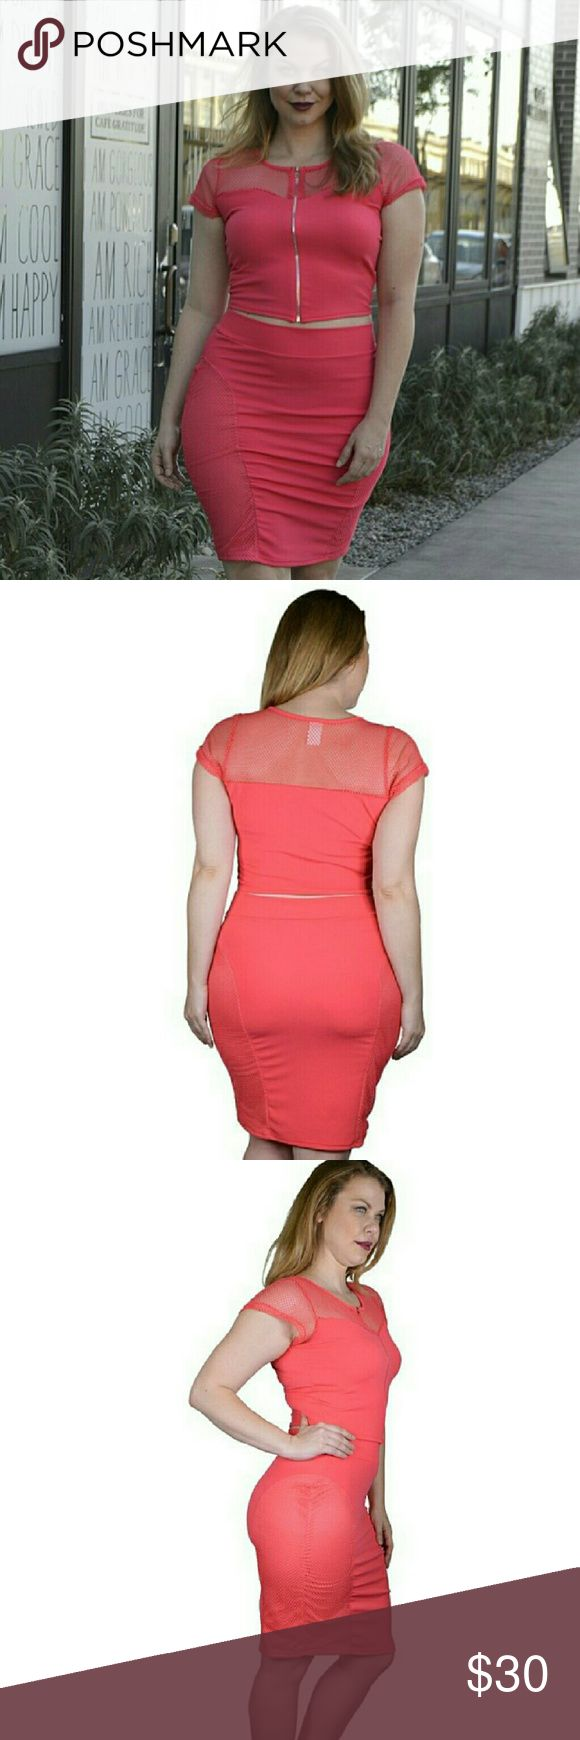 Plus Size Crop Top and Pencil Fitted Skirt Set Made In U.S.A 1XL.2XL.3XL 96% Polyester 4% Spandex Pink? Tops Crop Tops